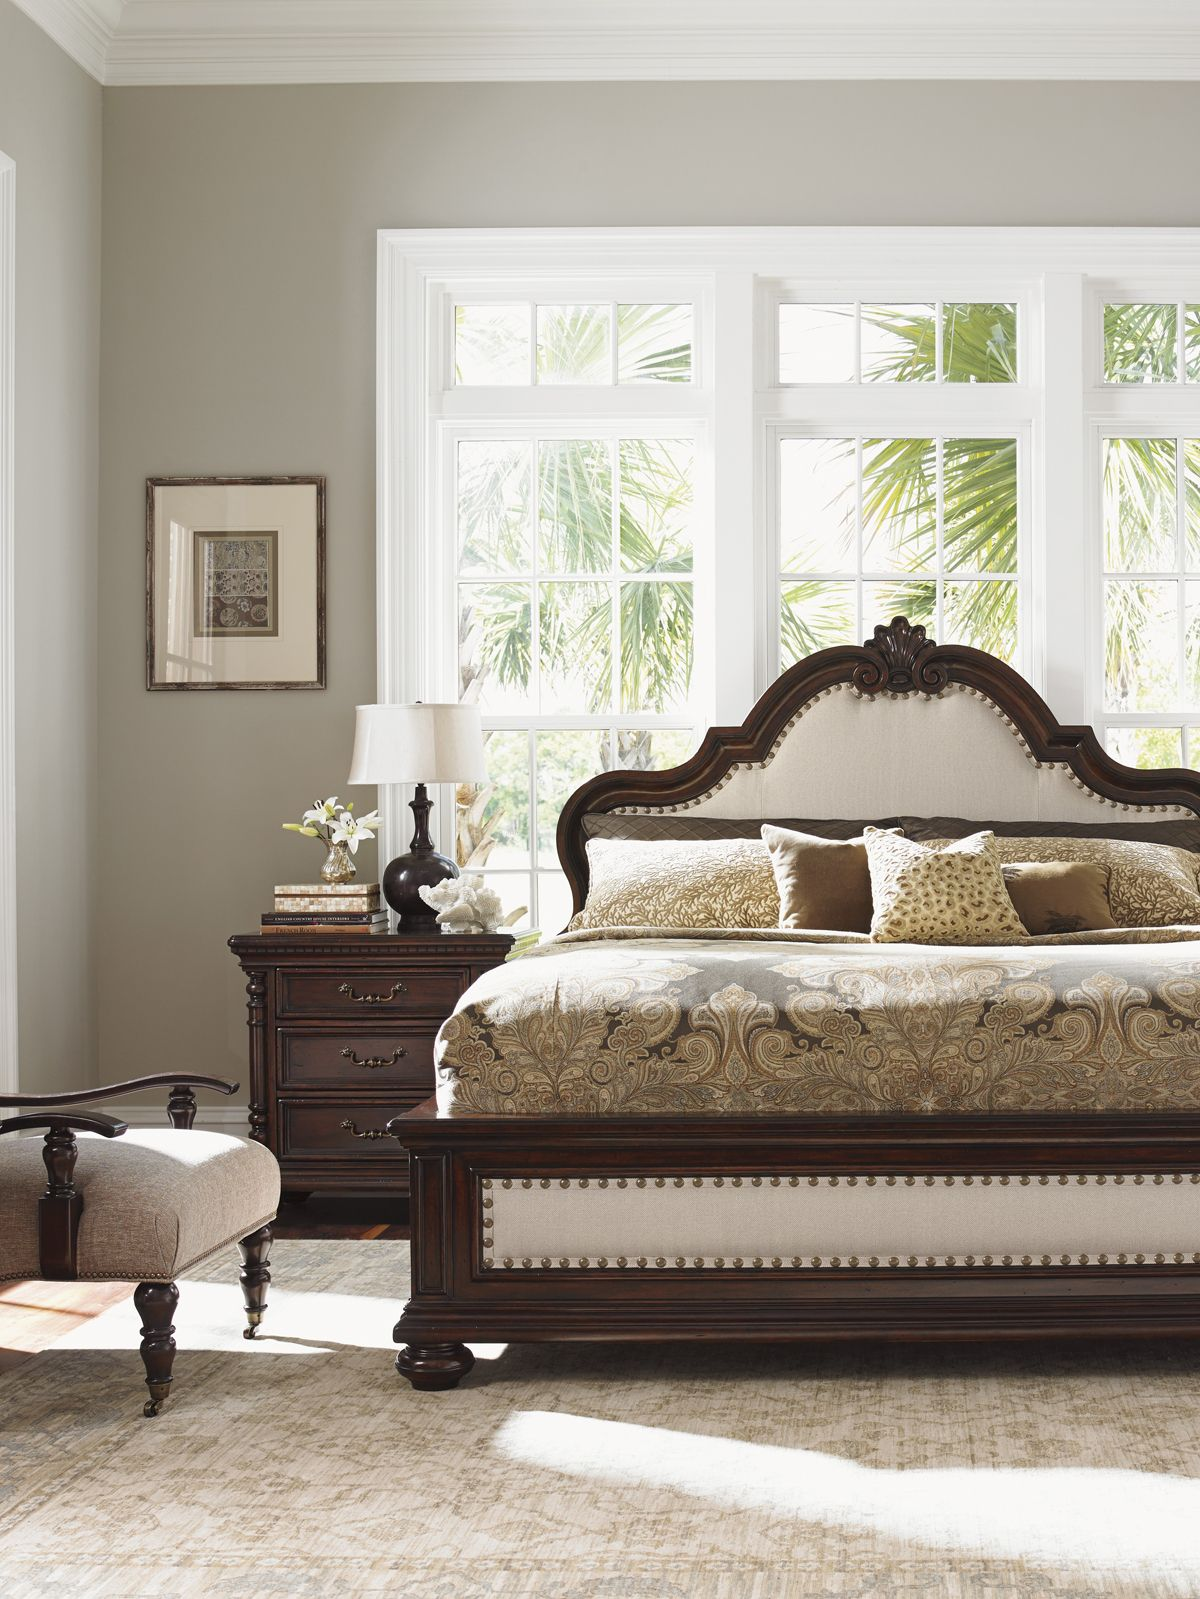 Tommy Bahama Kilimanjaro Barcelona Panel Bed   A Grand Bed Fit For Royalty,  The Tommy Bahama Kilimanjaro Barcelona Panel Bed Brings Regal Comfort And  Style ...